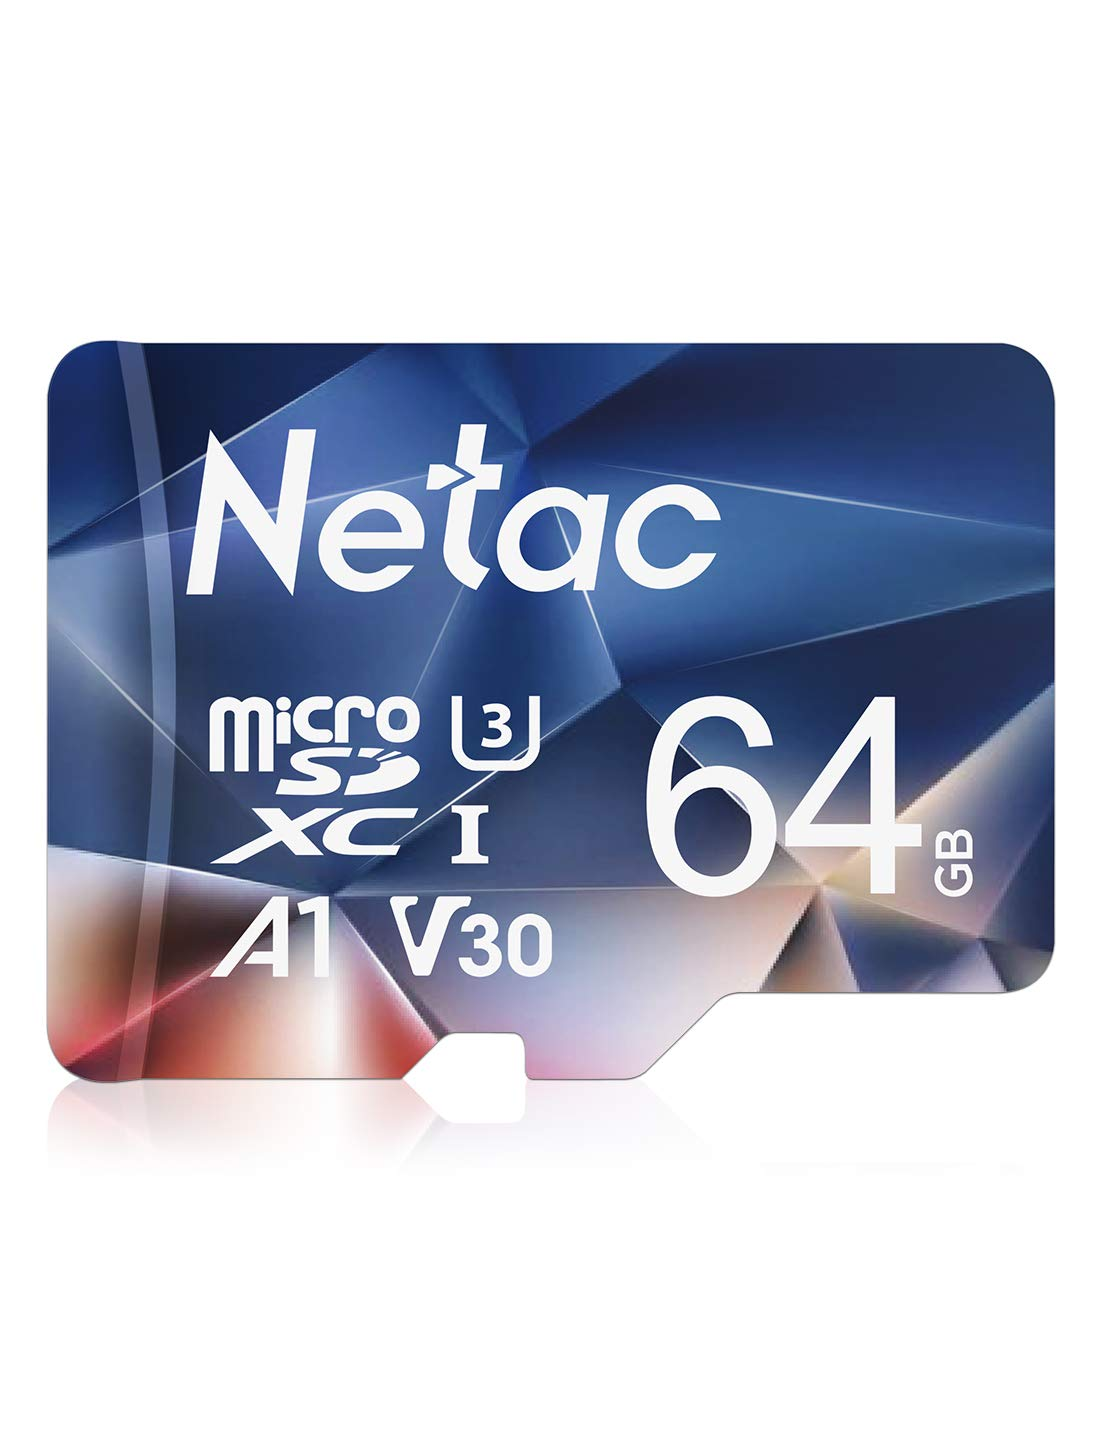 Netac 64GB Micro SD Card, MicroSDXC UHS-I Memory Card - 100MB/s, 667X, U3, Class10, Full HD Video V30, A1, FAT32, High Speed Flash TF Card P500 for Laptop/Bluetooth Speaker/Tablet/Smartphone/Camera